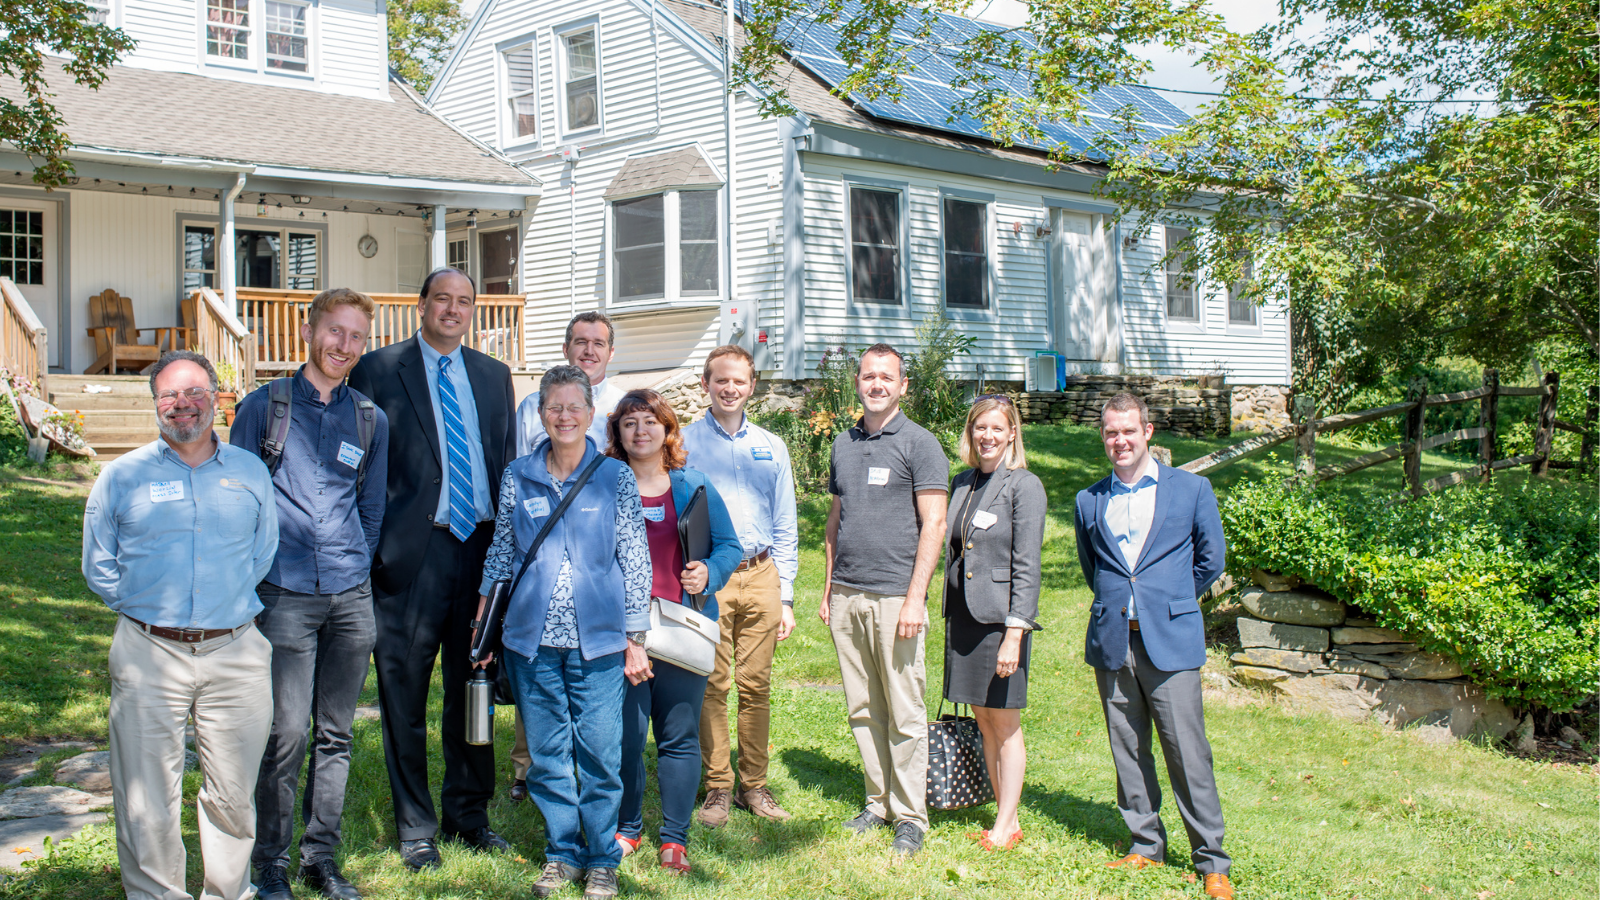 At the Dismas Family Farm in Oakham, we gathered with legislators and activists to support solar and other forms of renewable energy.